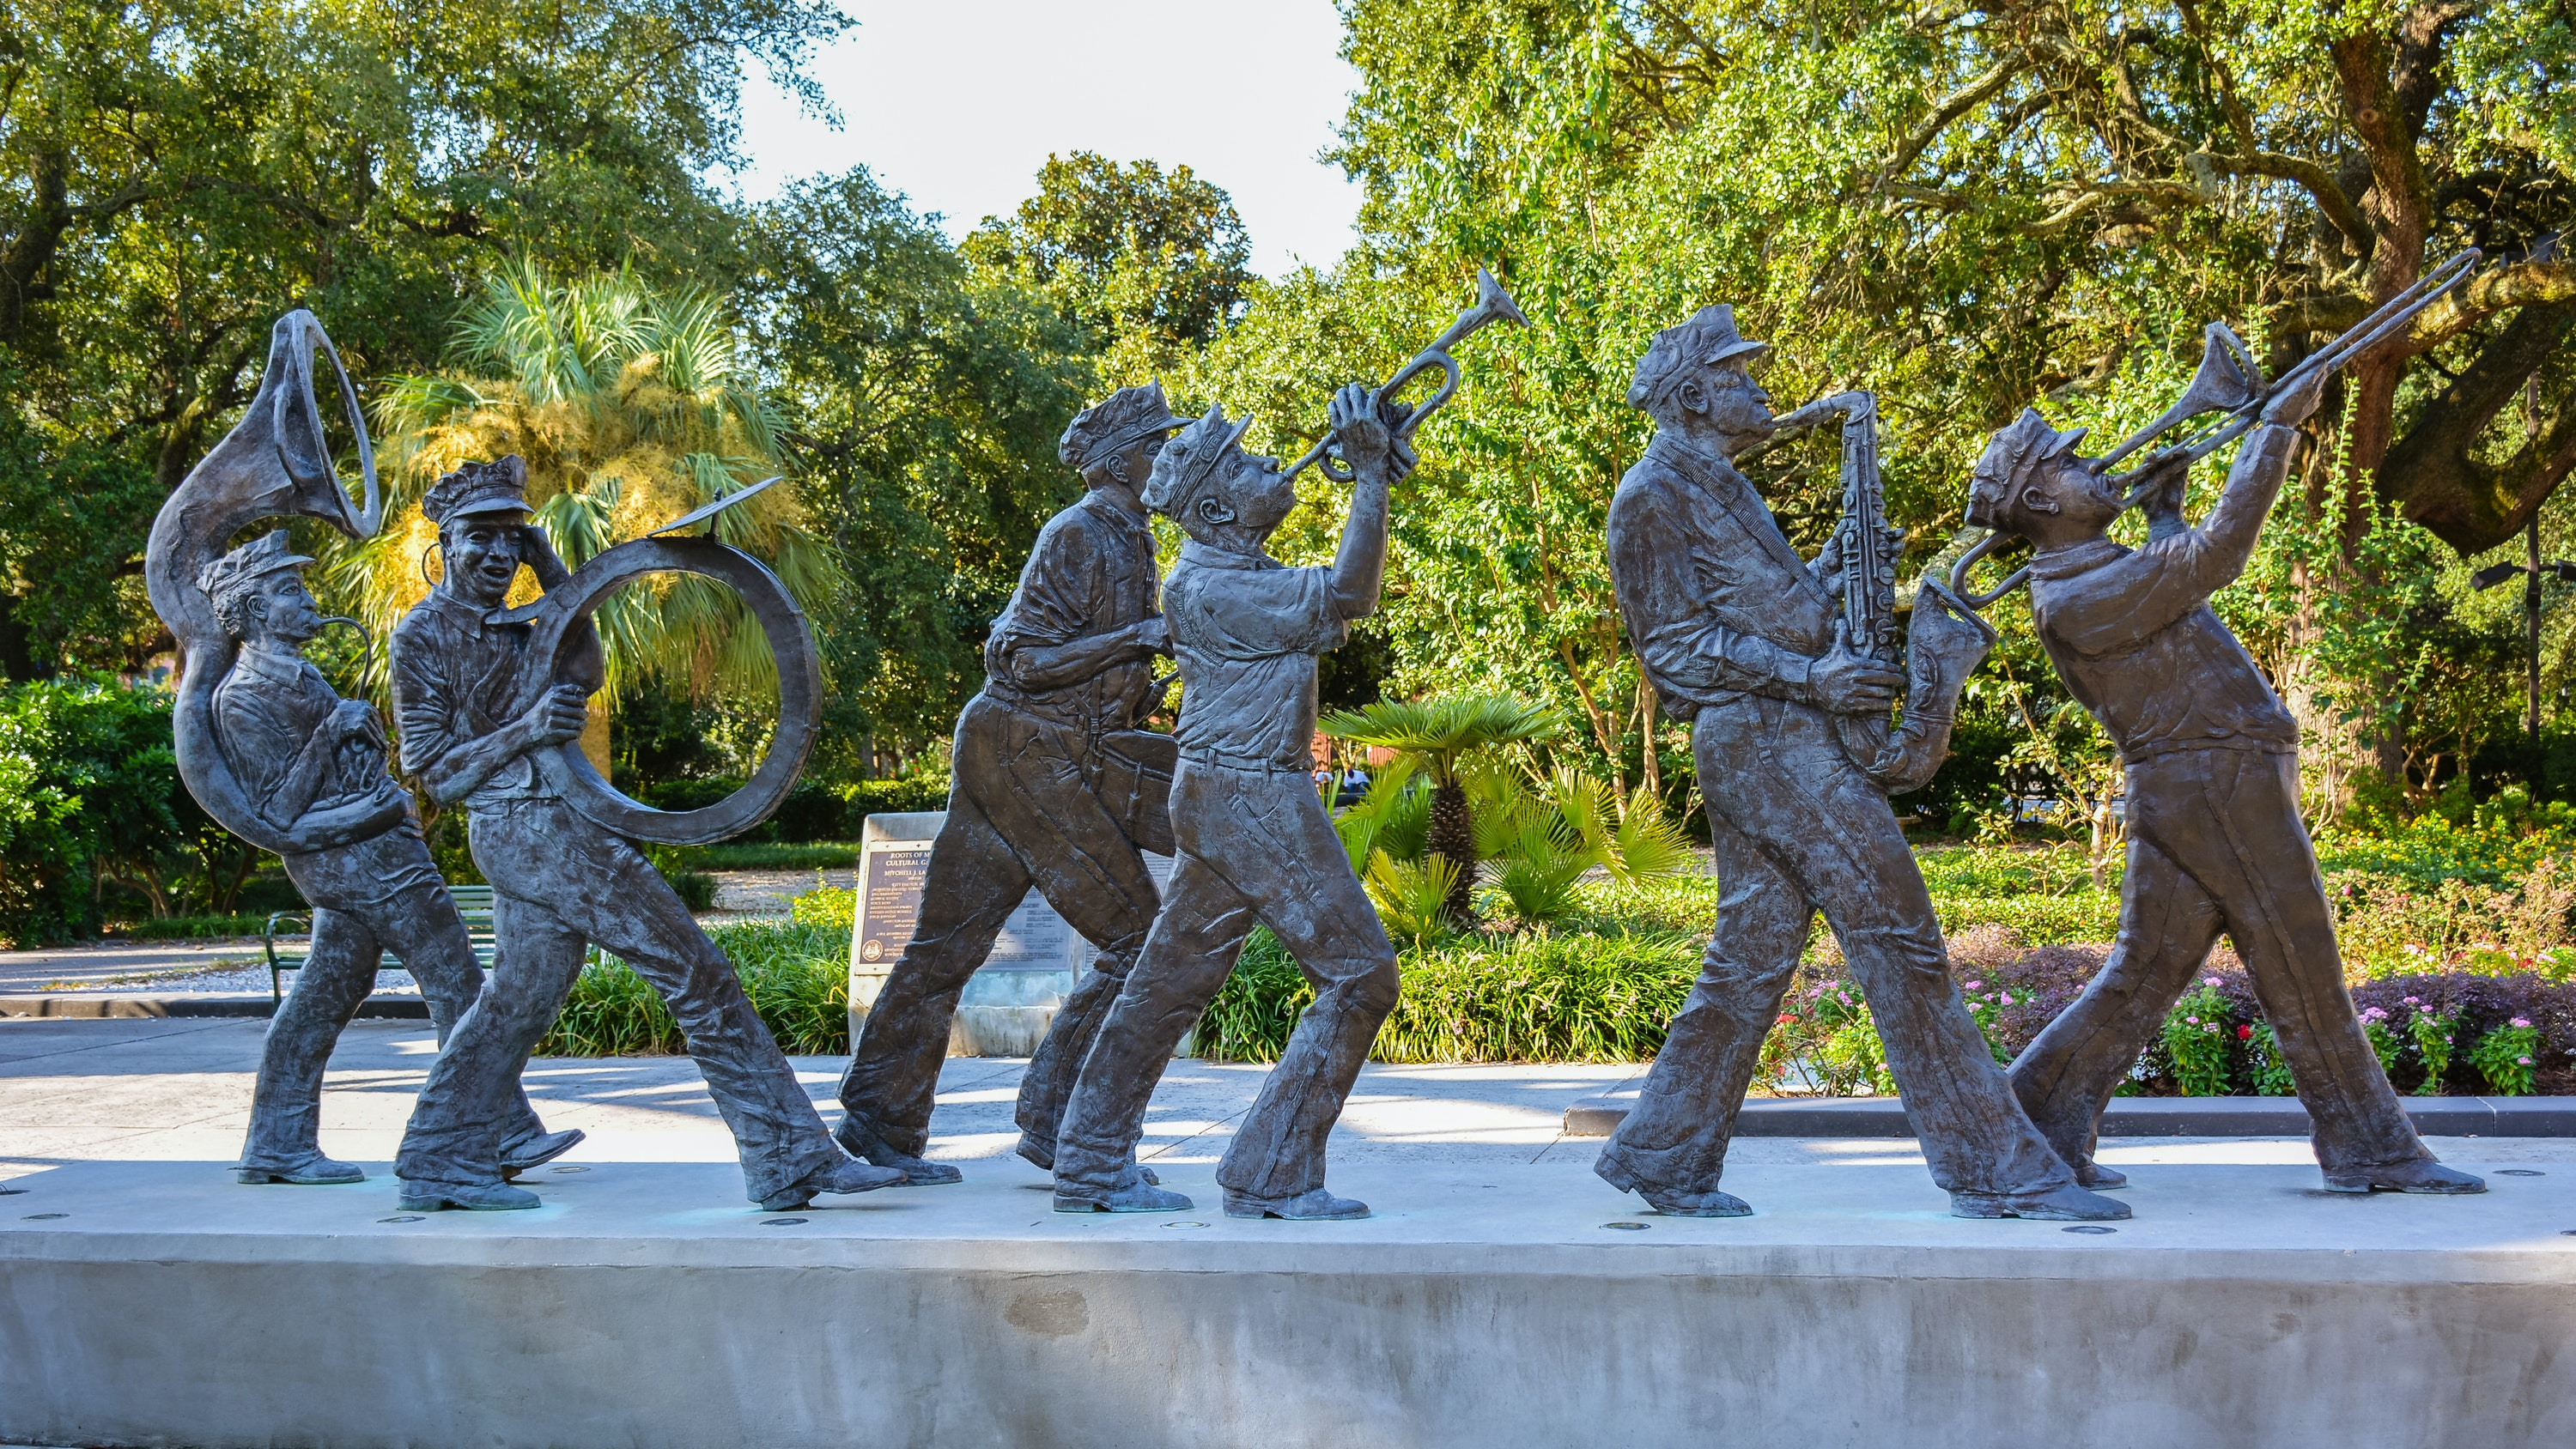 Louis Armstrong Park is full of statues.